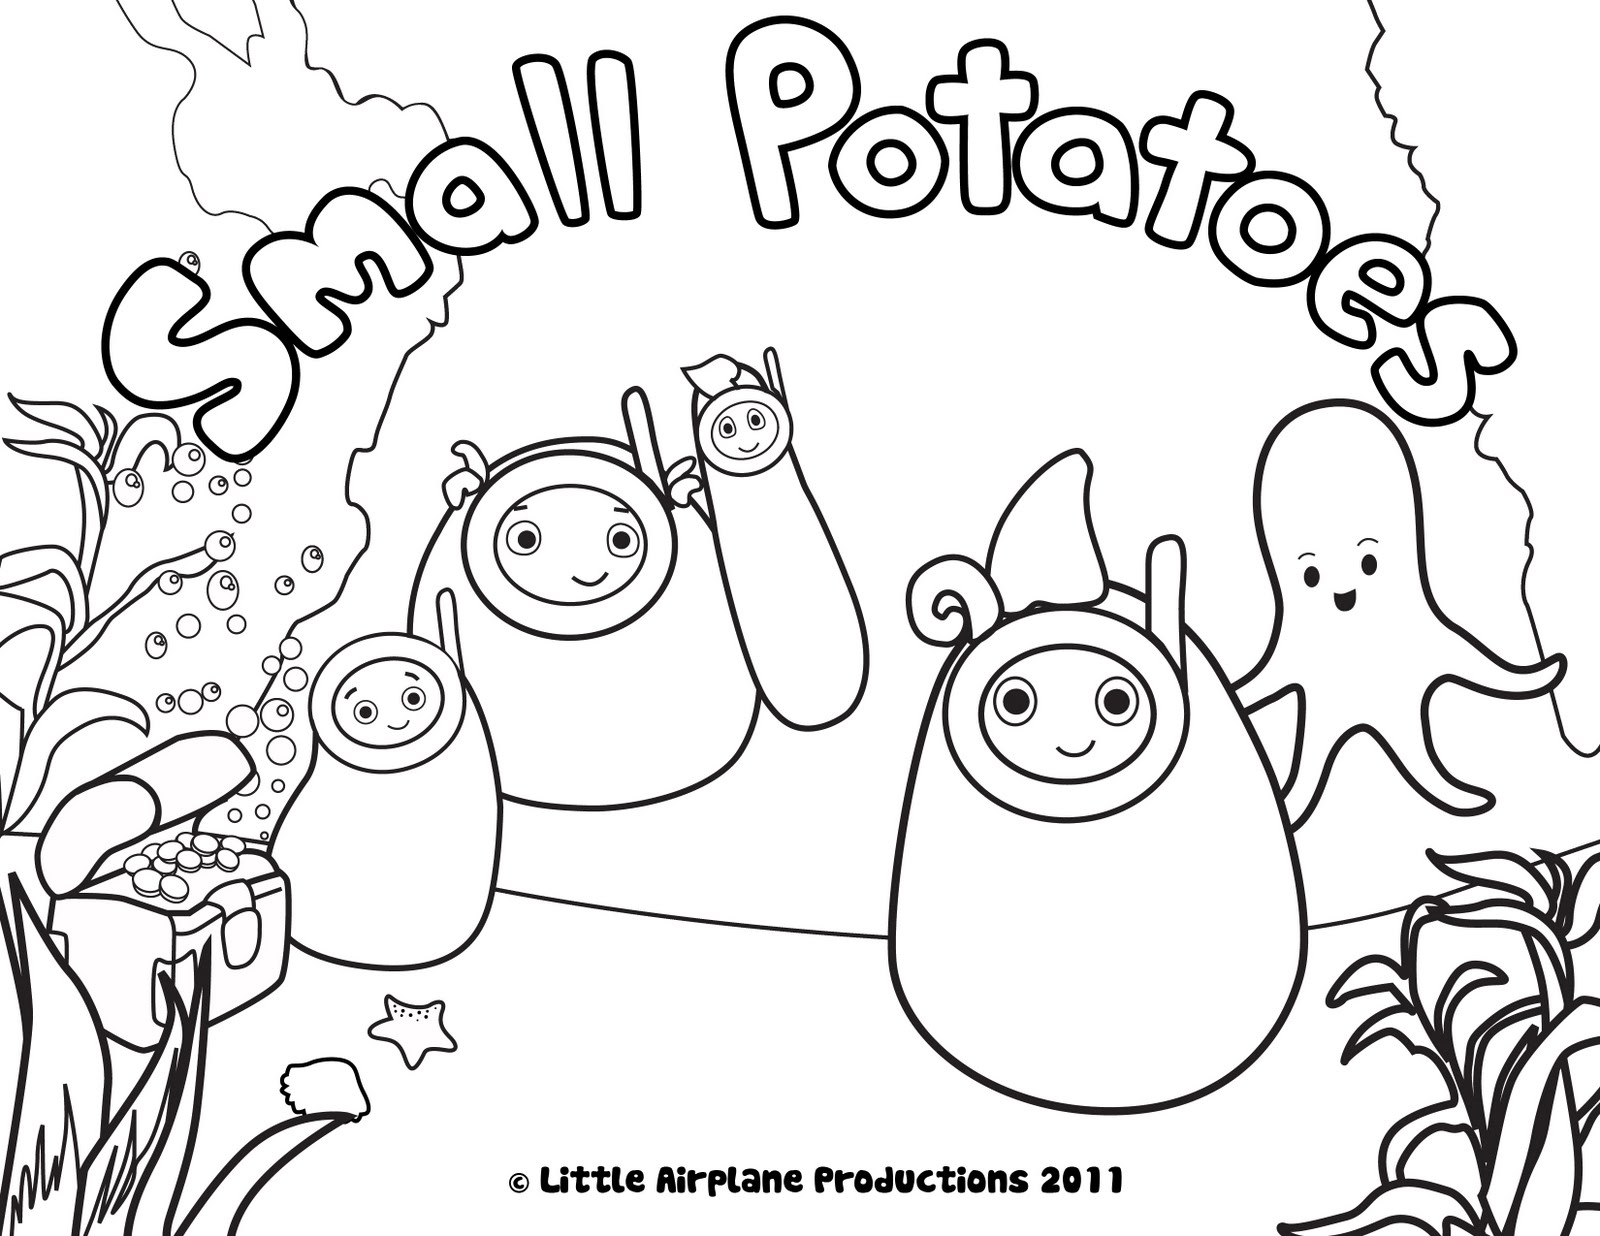 erica kepler small potatoes coloring pages